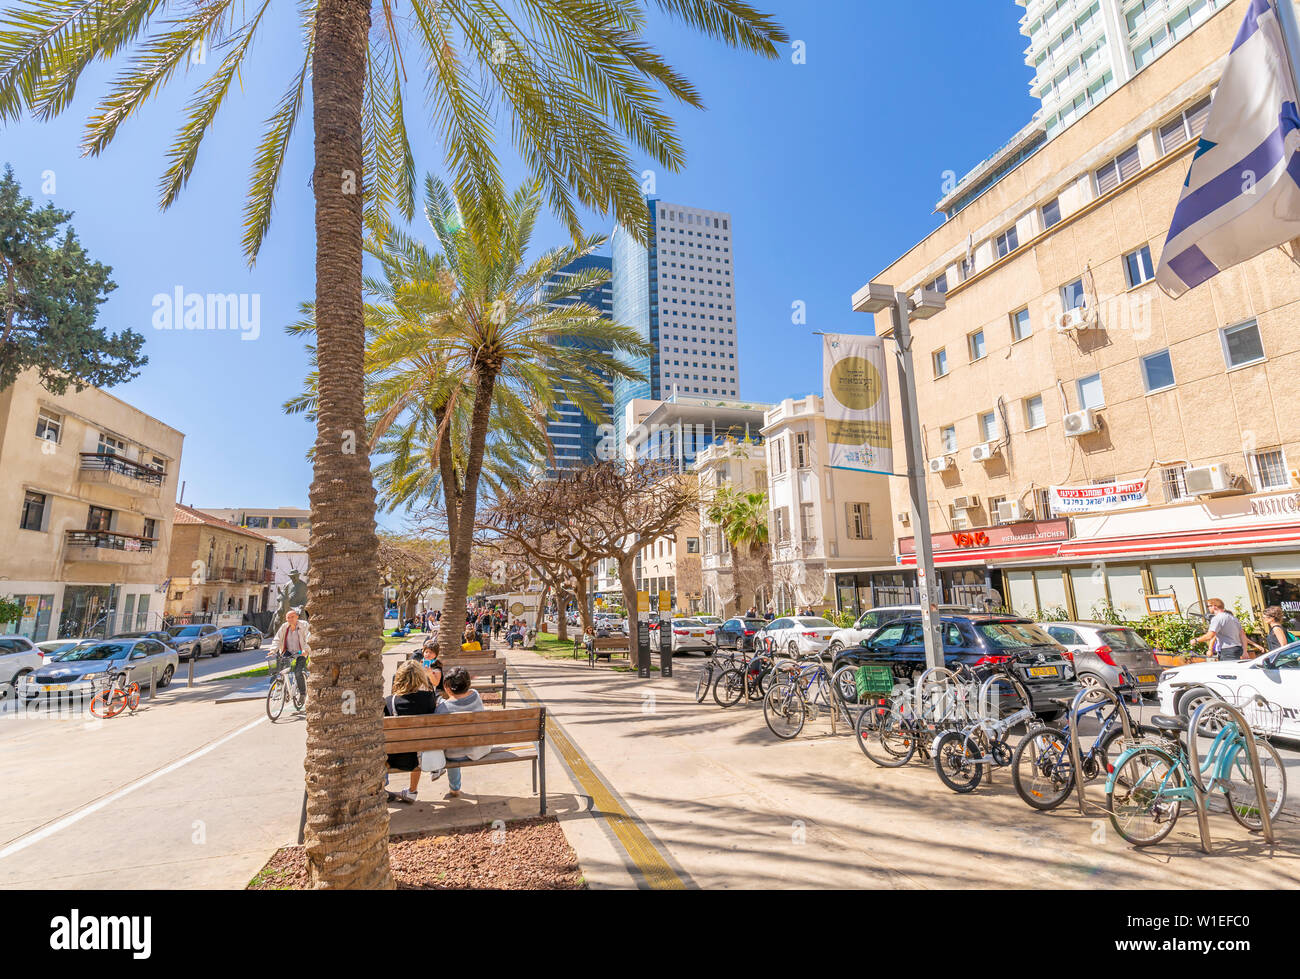 View of palm trees and walkway on Rothschild Boulevard, Tel Aviv, Israel, Middle East - Stock Image